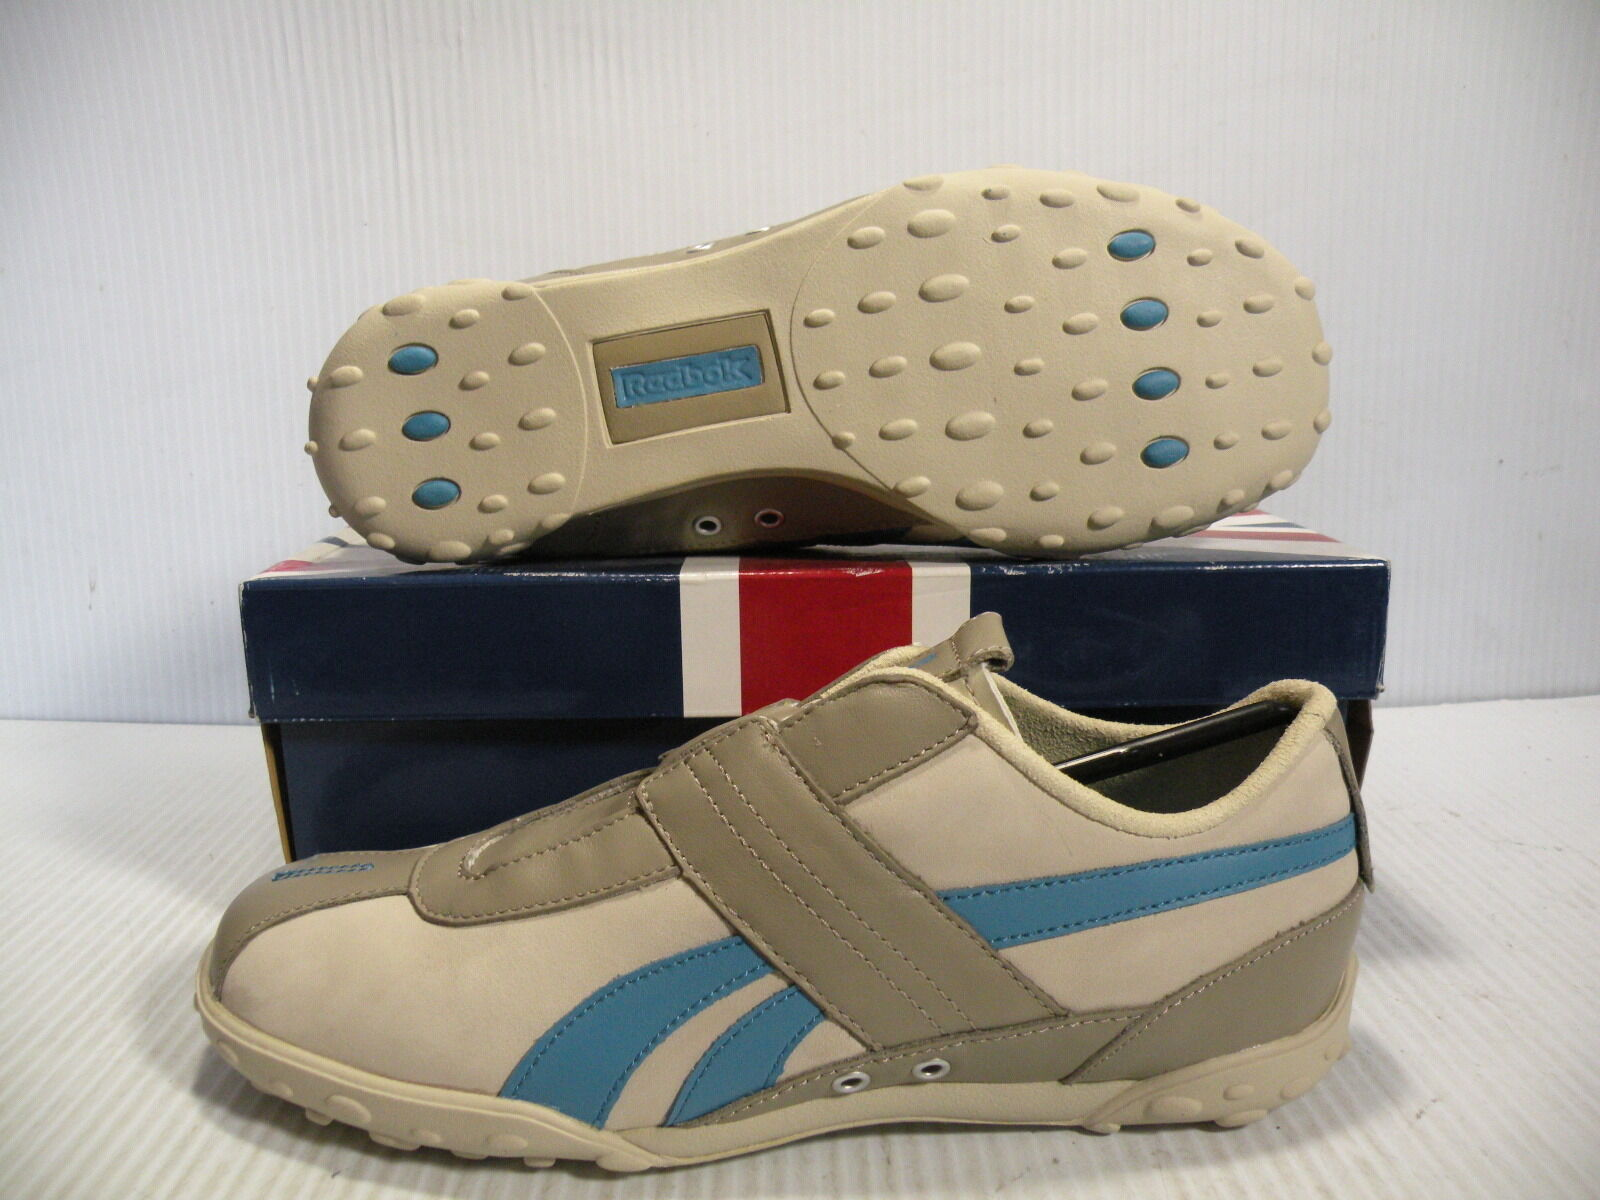 REEBOK CLASSIC MOTORING CLOSURE LO WOMEN WOMEN WOMEN SHOES KHAKI blueE 32-151174 SIZE 5.5 NEW 2b7b77